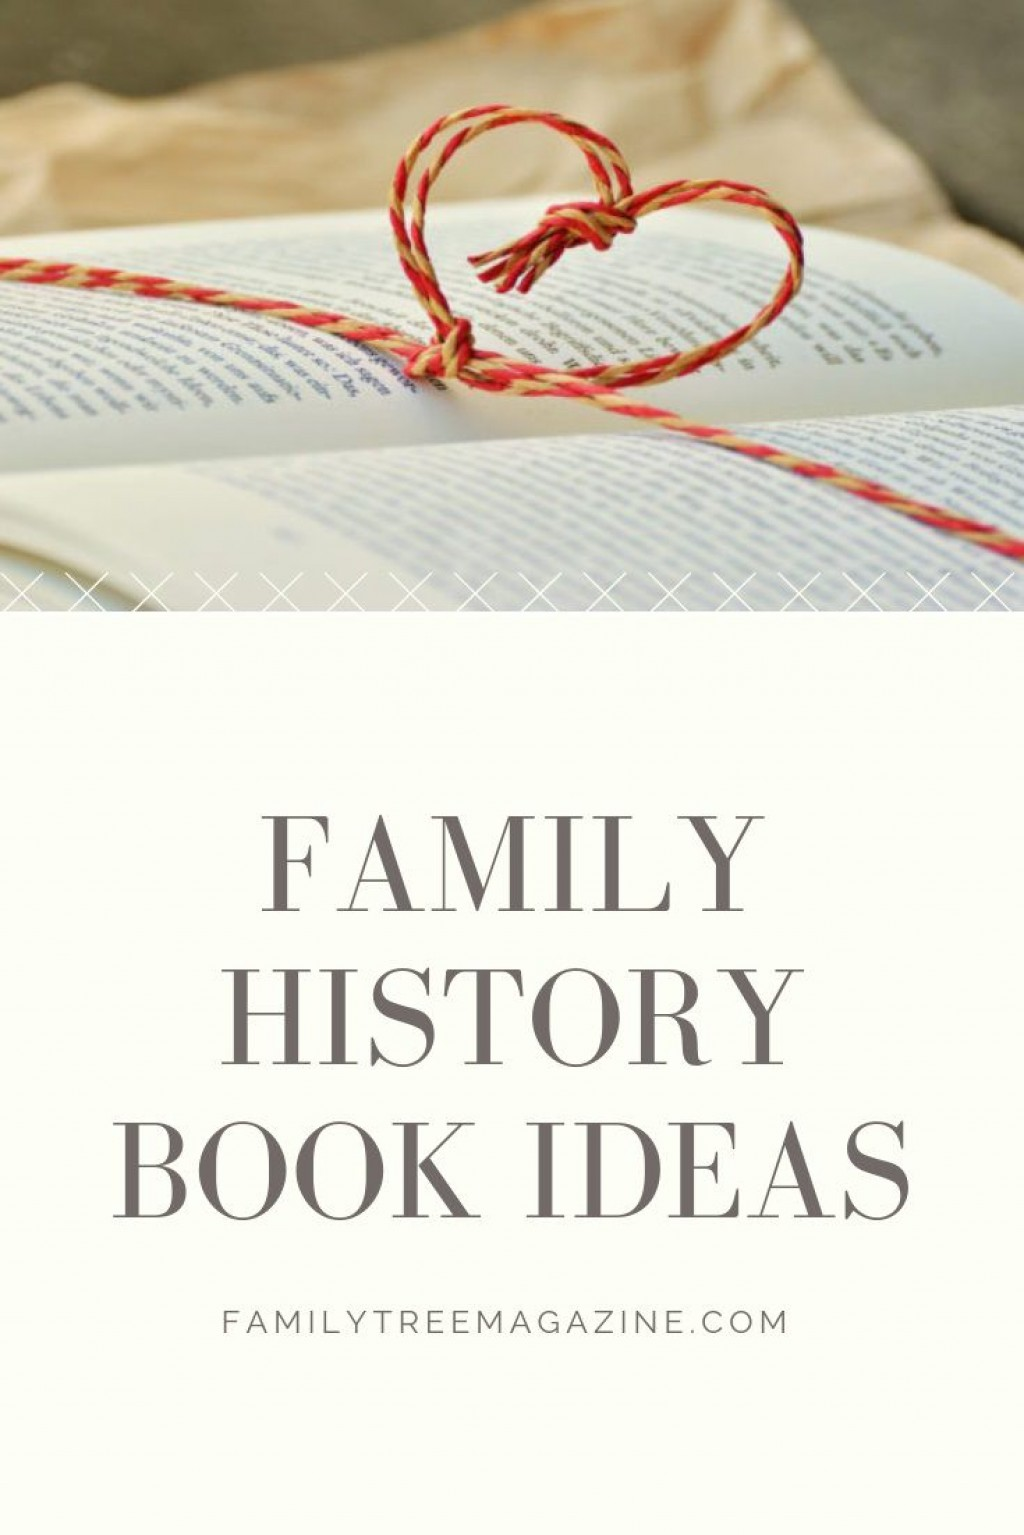 009 Rare Family Tree Book Template High Definition  Photo FreeLarge